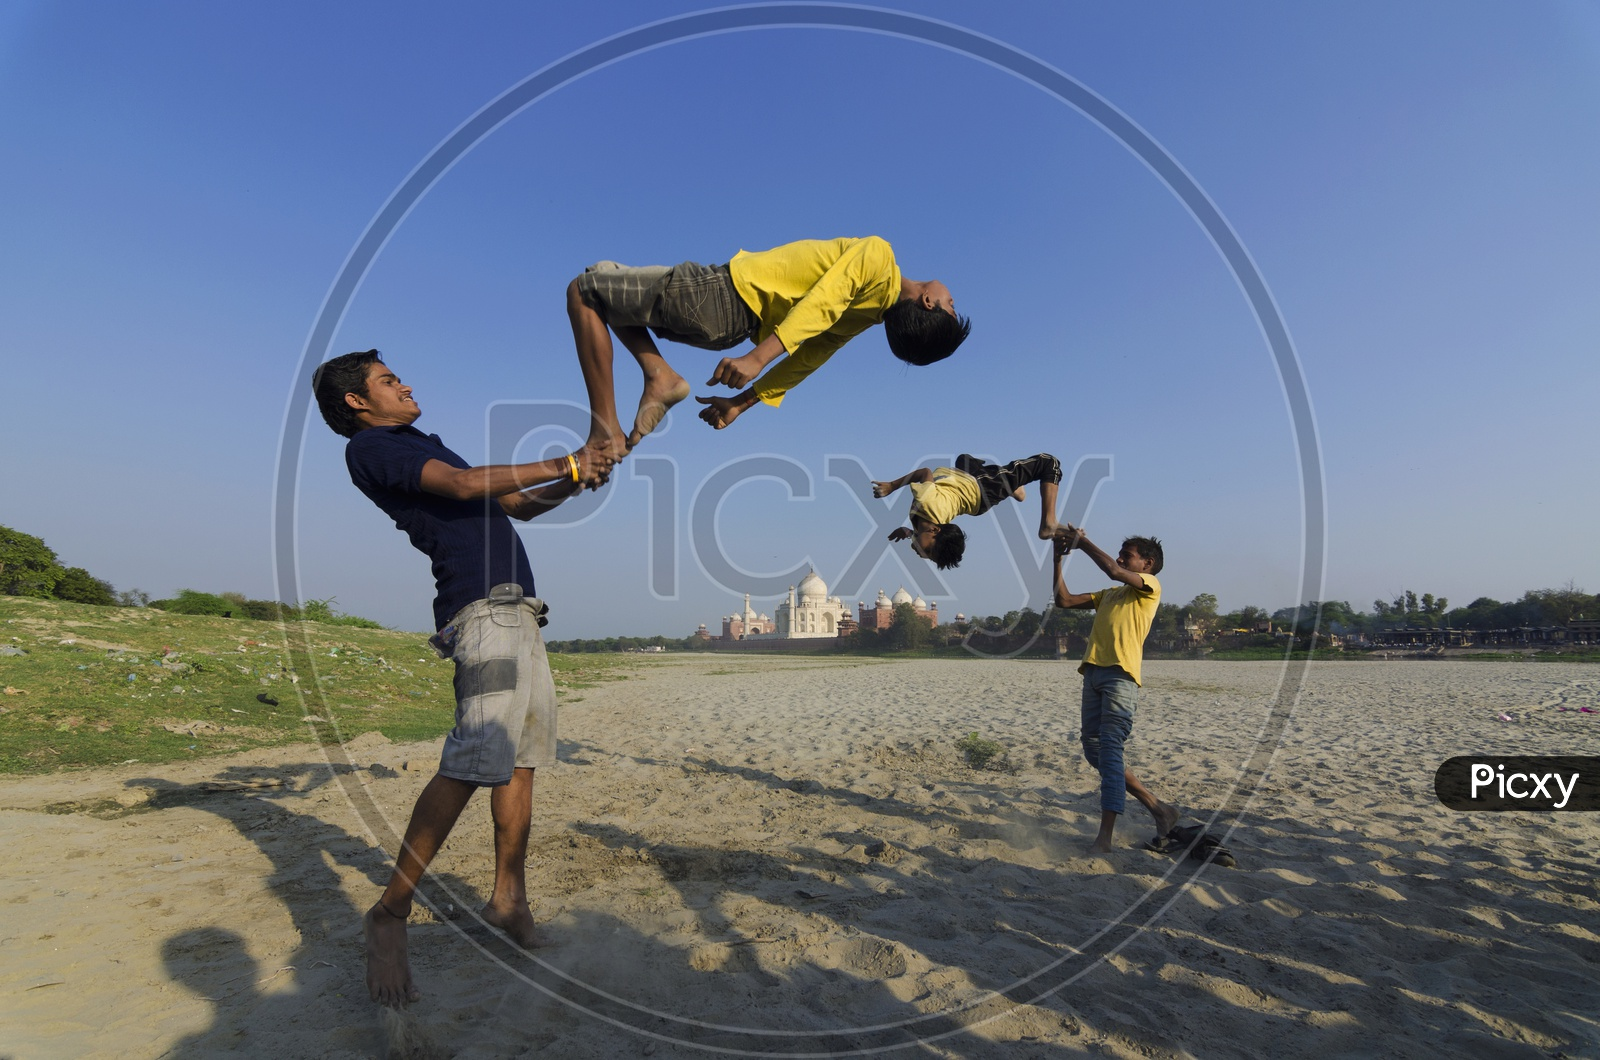 Guys doing stunts by jumping on a person